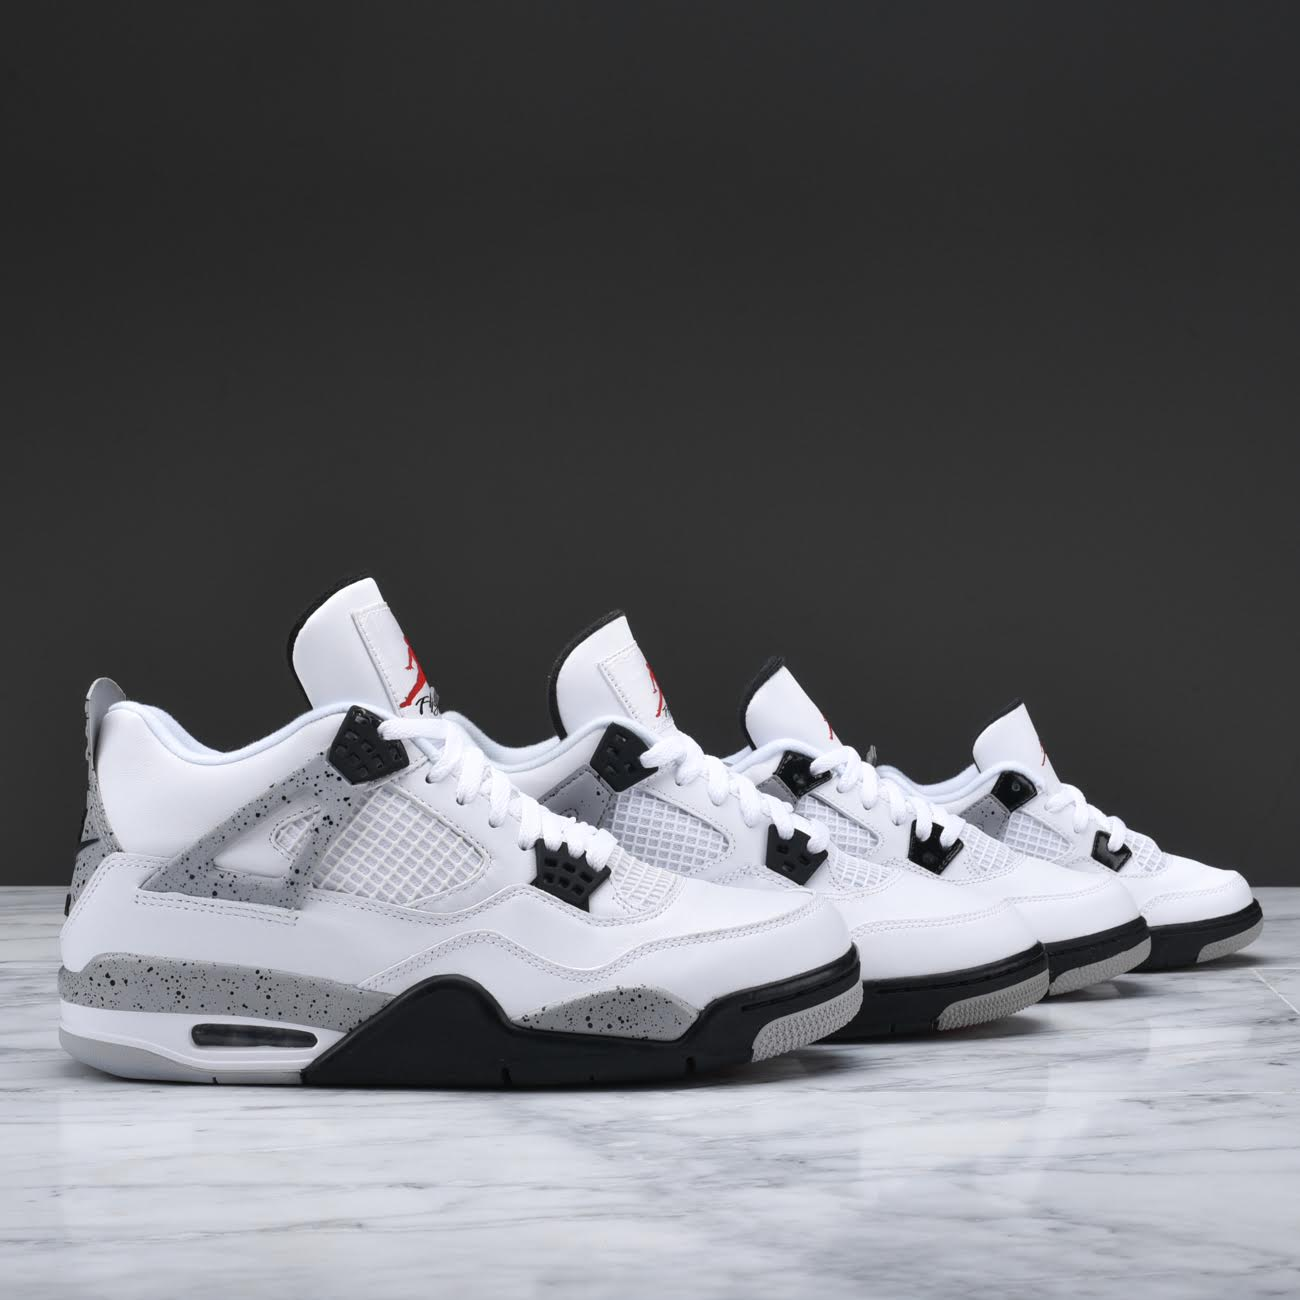 Your Best Look Yet at the Remastered Air Jordan 4 Retro in White: Cement 1